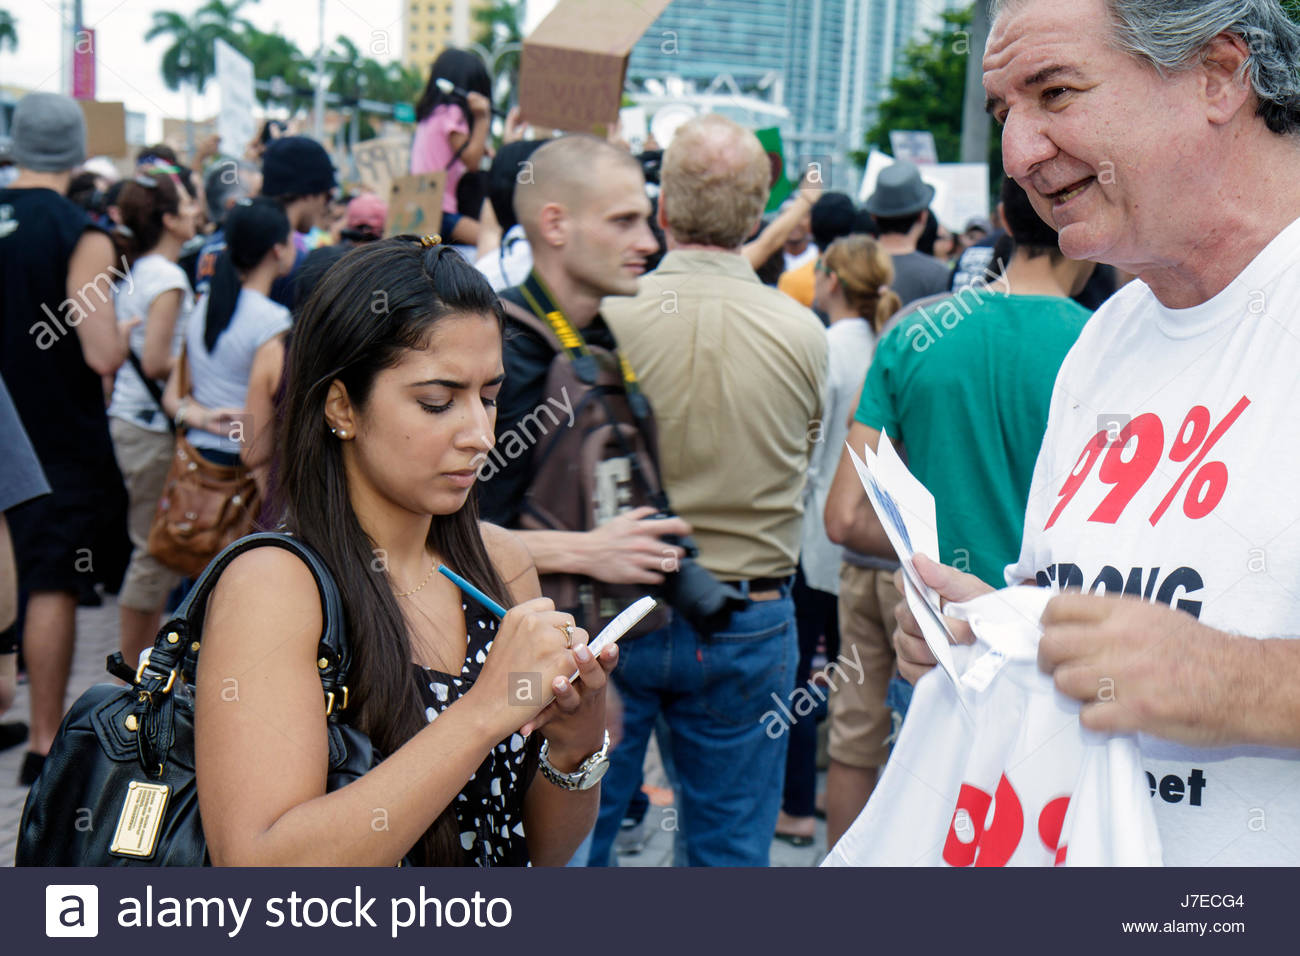 Miami Florida Biscayne Boulevard Freedom Torch Occupy Miami demonstration protest protesters anti Wall Street banks - Stock Image